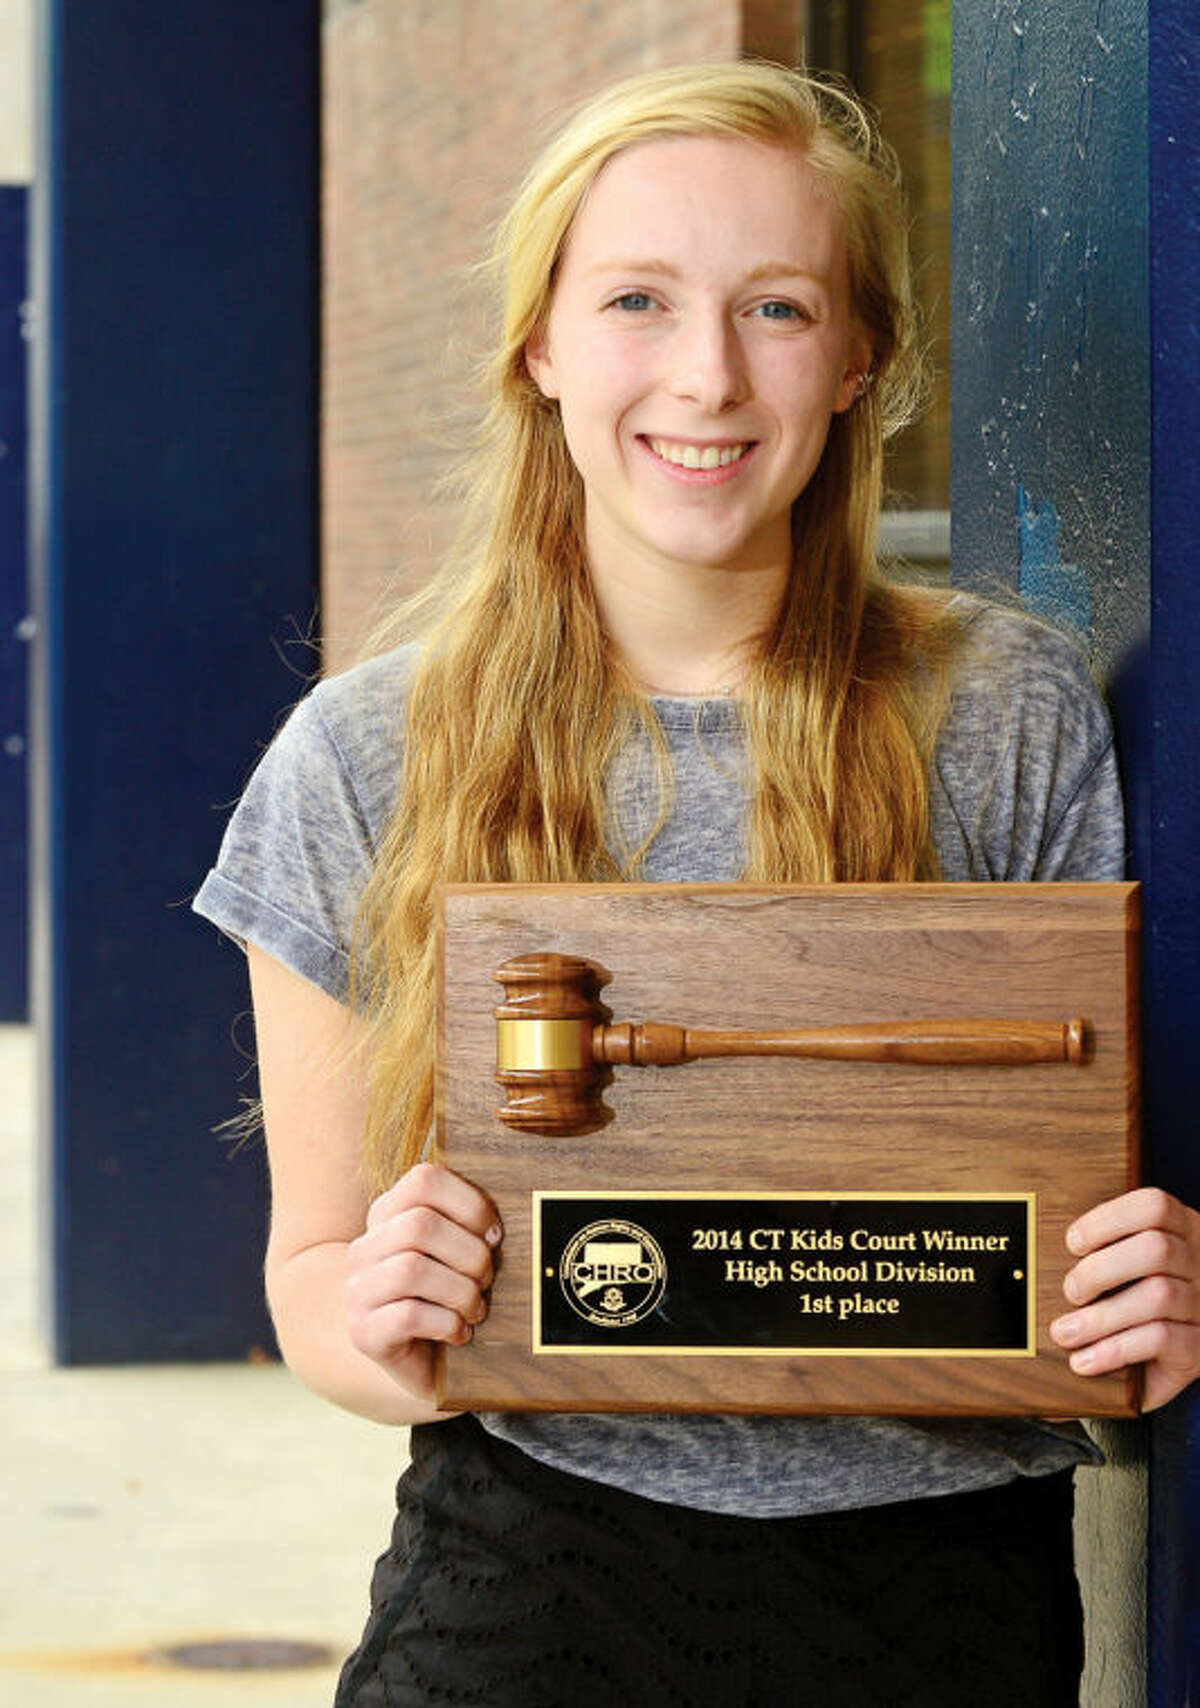 Olivia Phelan, a Wilton High School junior, was selected as the high school winner of the Connecticut Kids Court Competition in Hartford this week. Her speech was titled